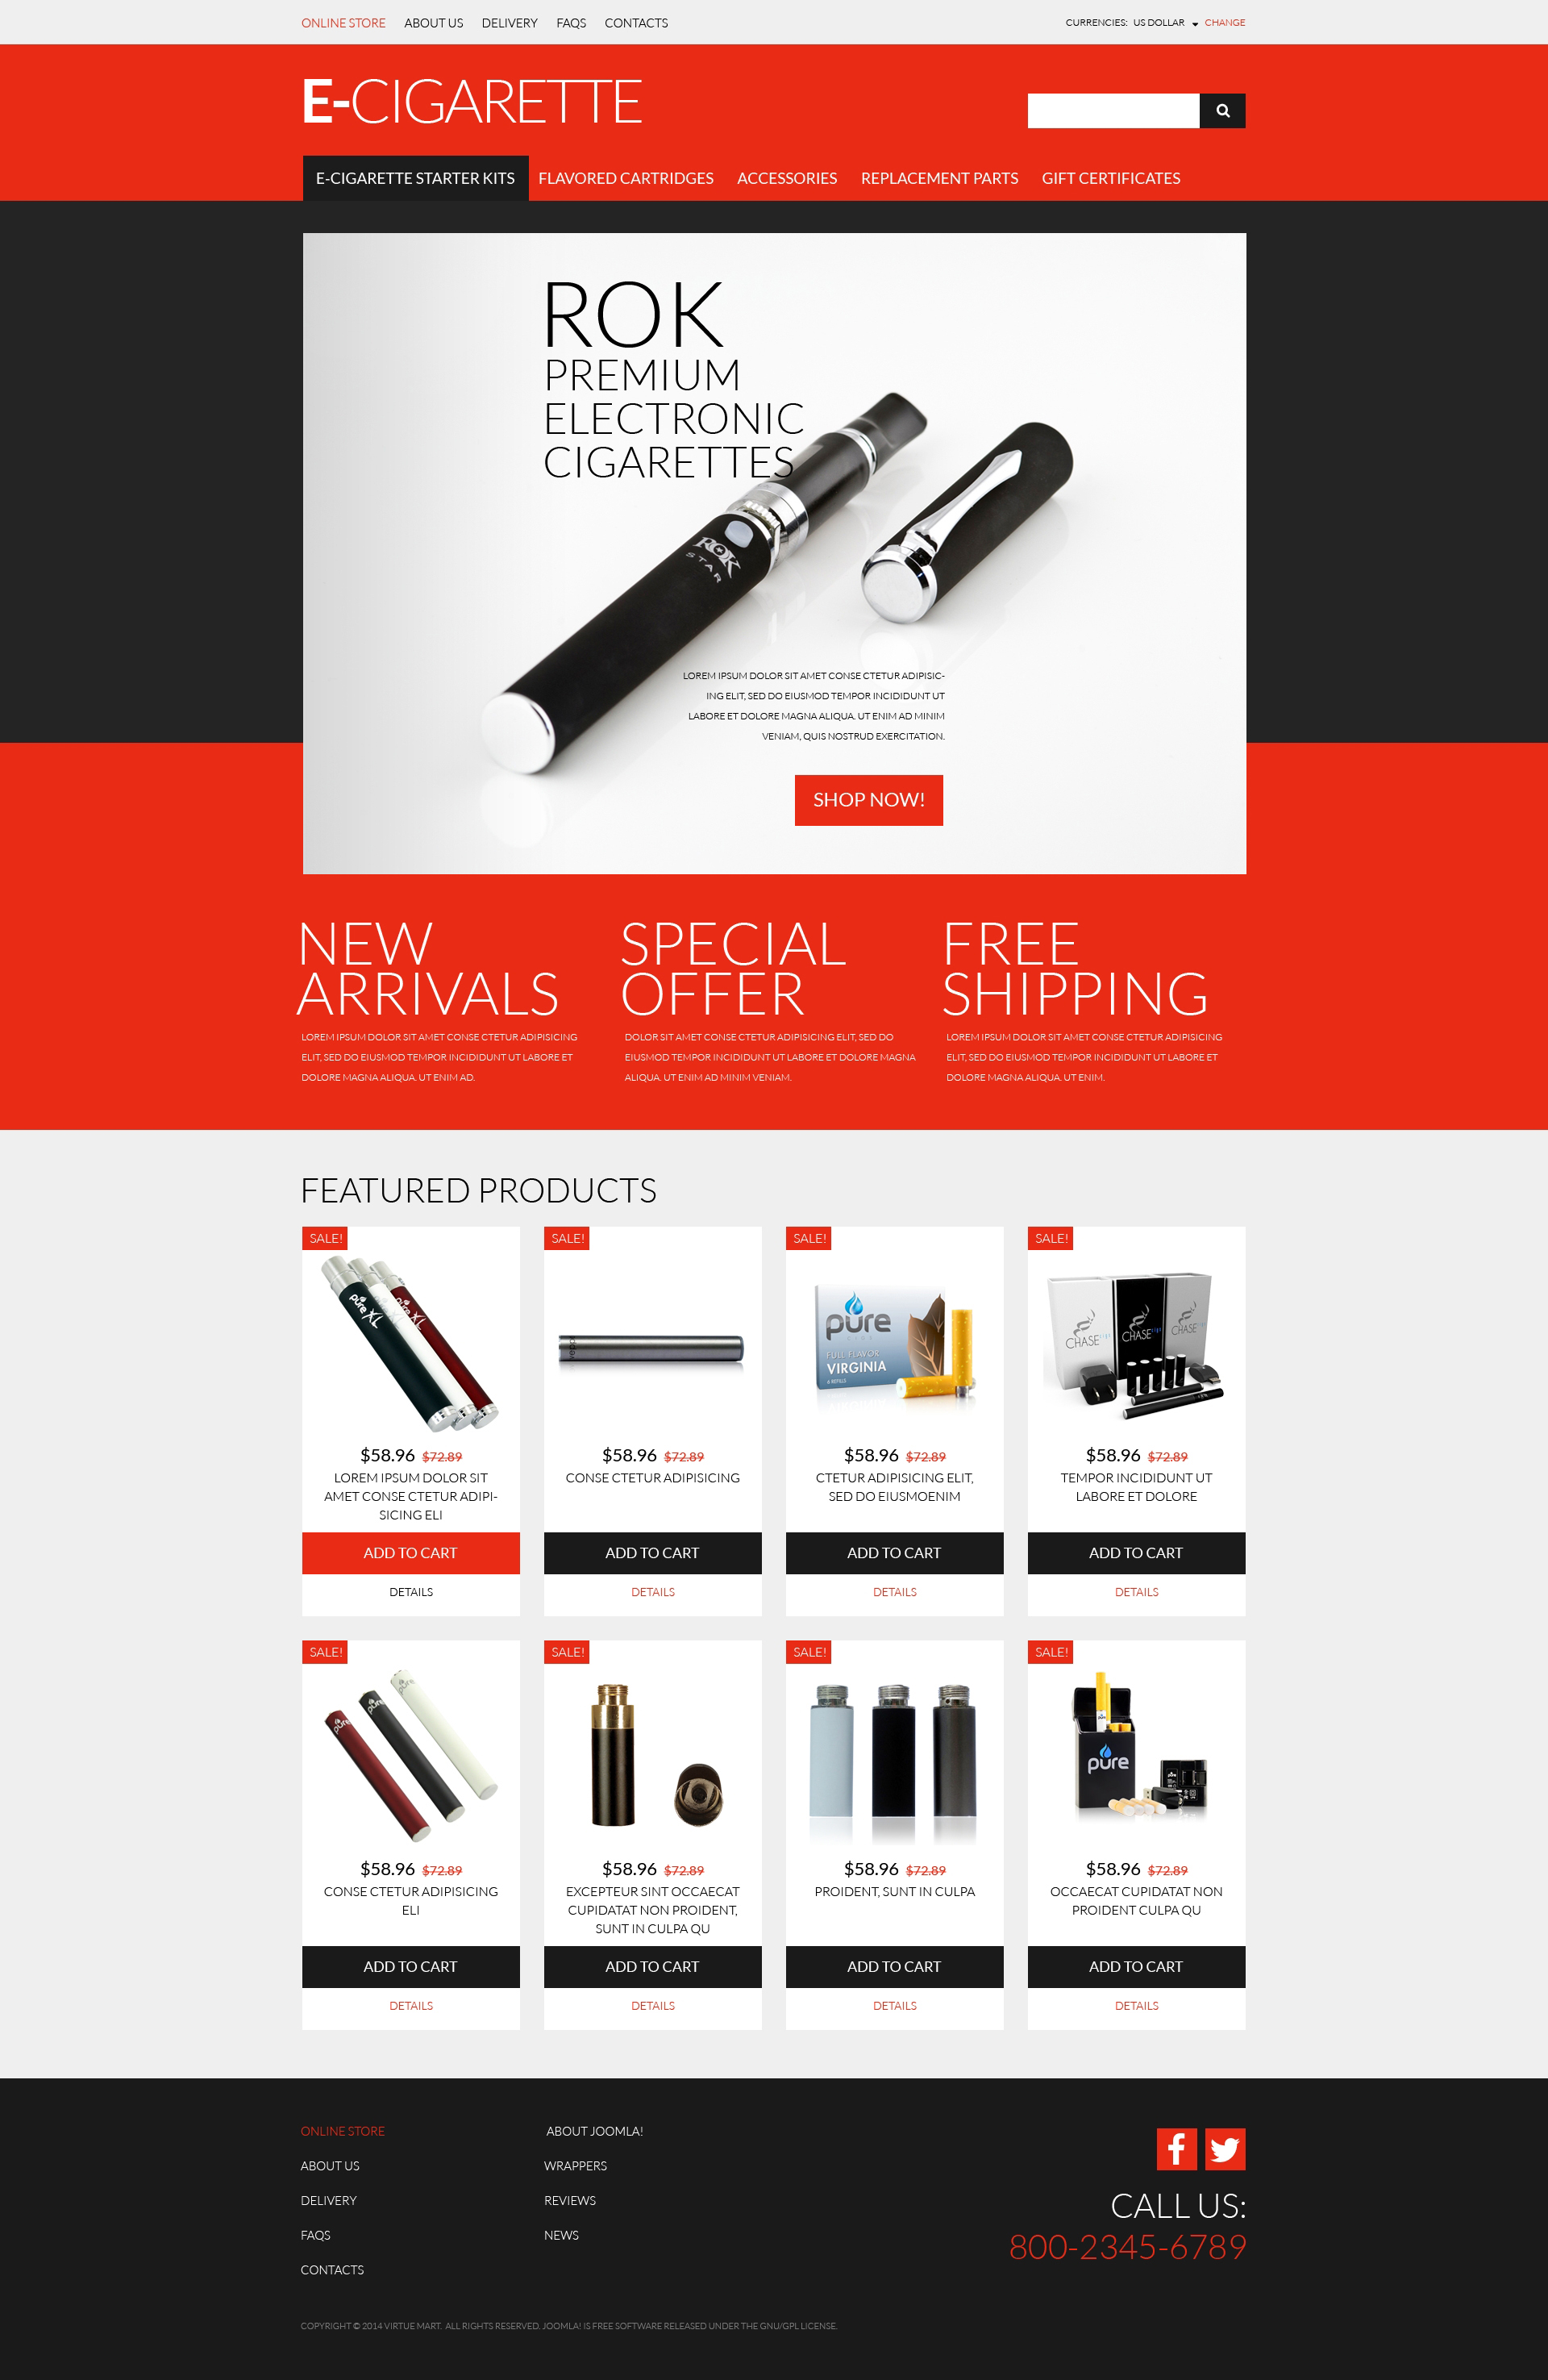 Ecigs Vaping Supplies Virtuemart Template 51179